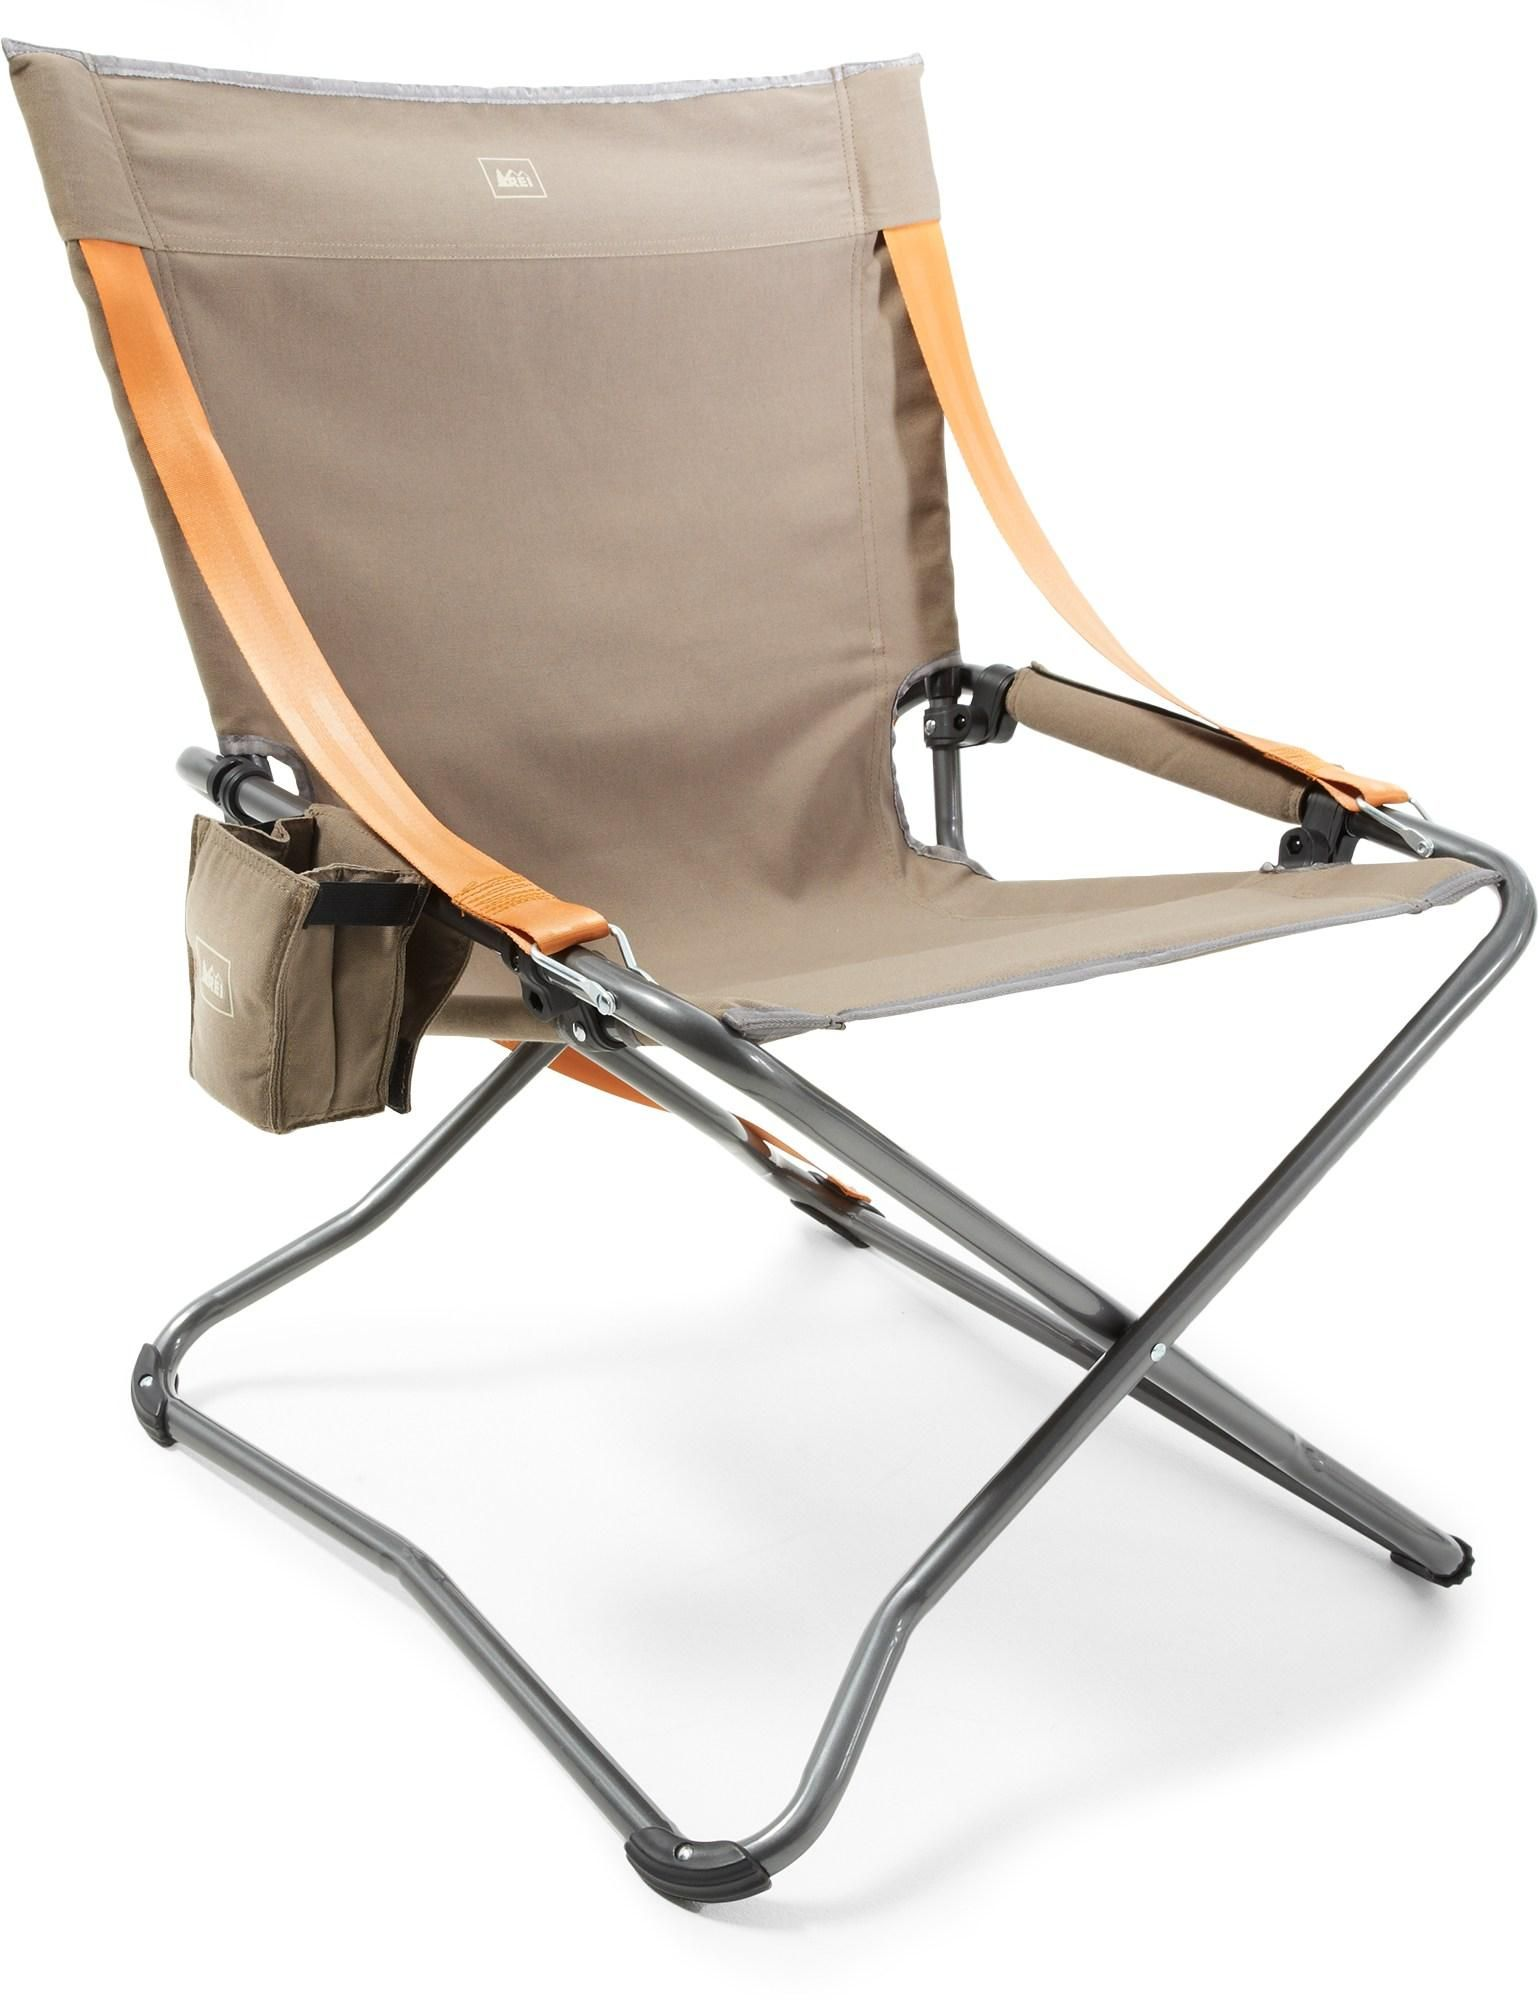 camp chairs rei brown leather wingback chair hang time hiking camping and happy campers